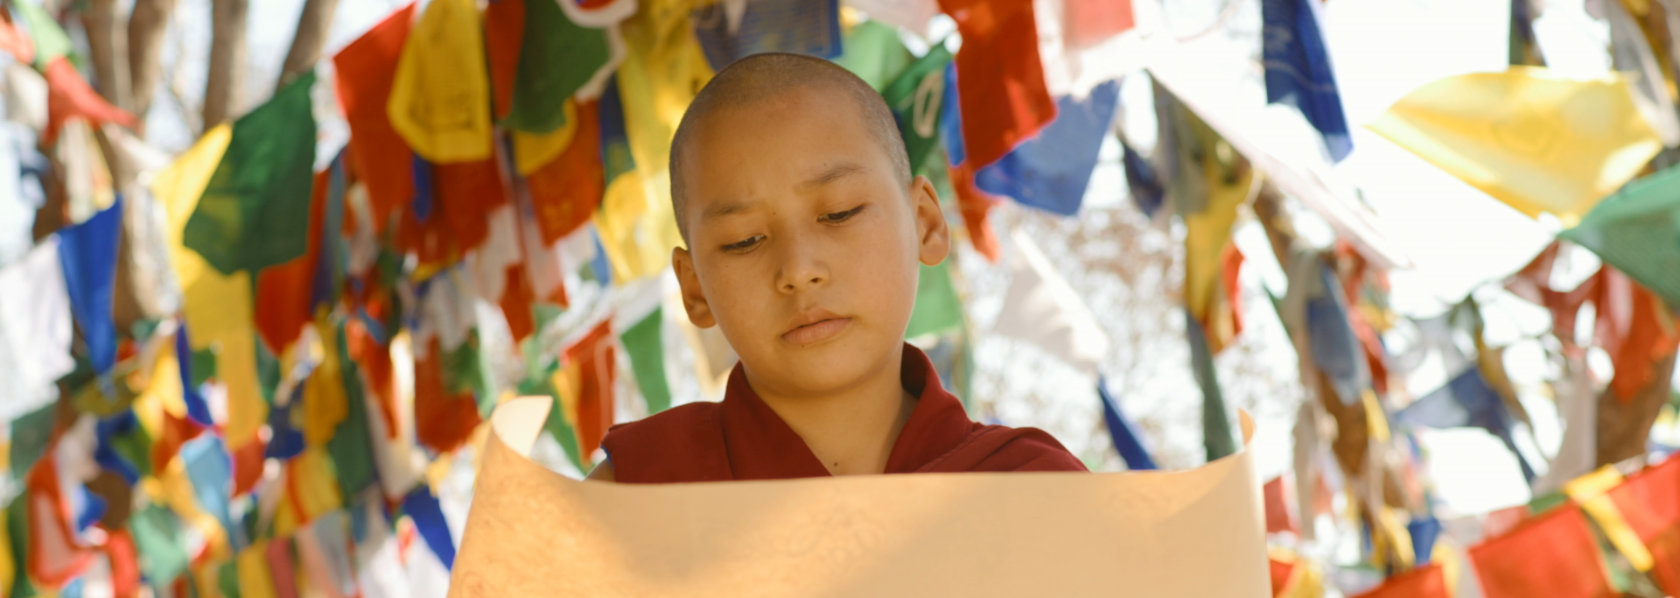 Young monk looking at paper background tibetan prayer flags - Saffron Heart - THIS Buddhist Film Festival